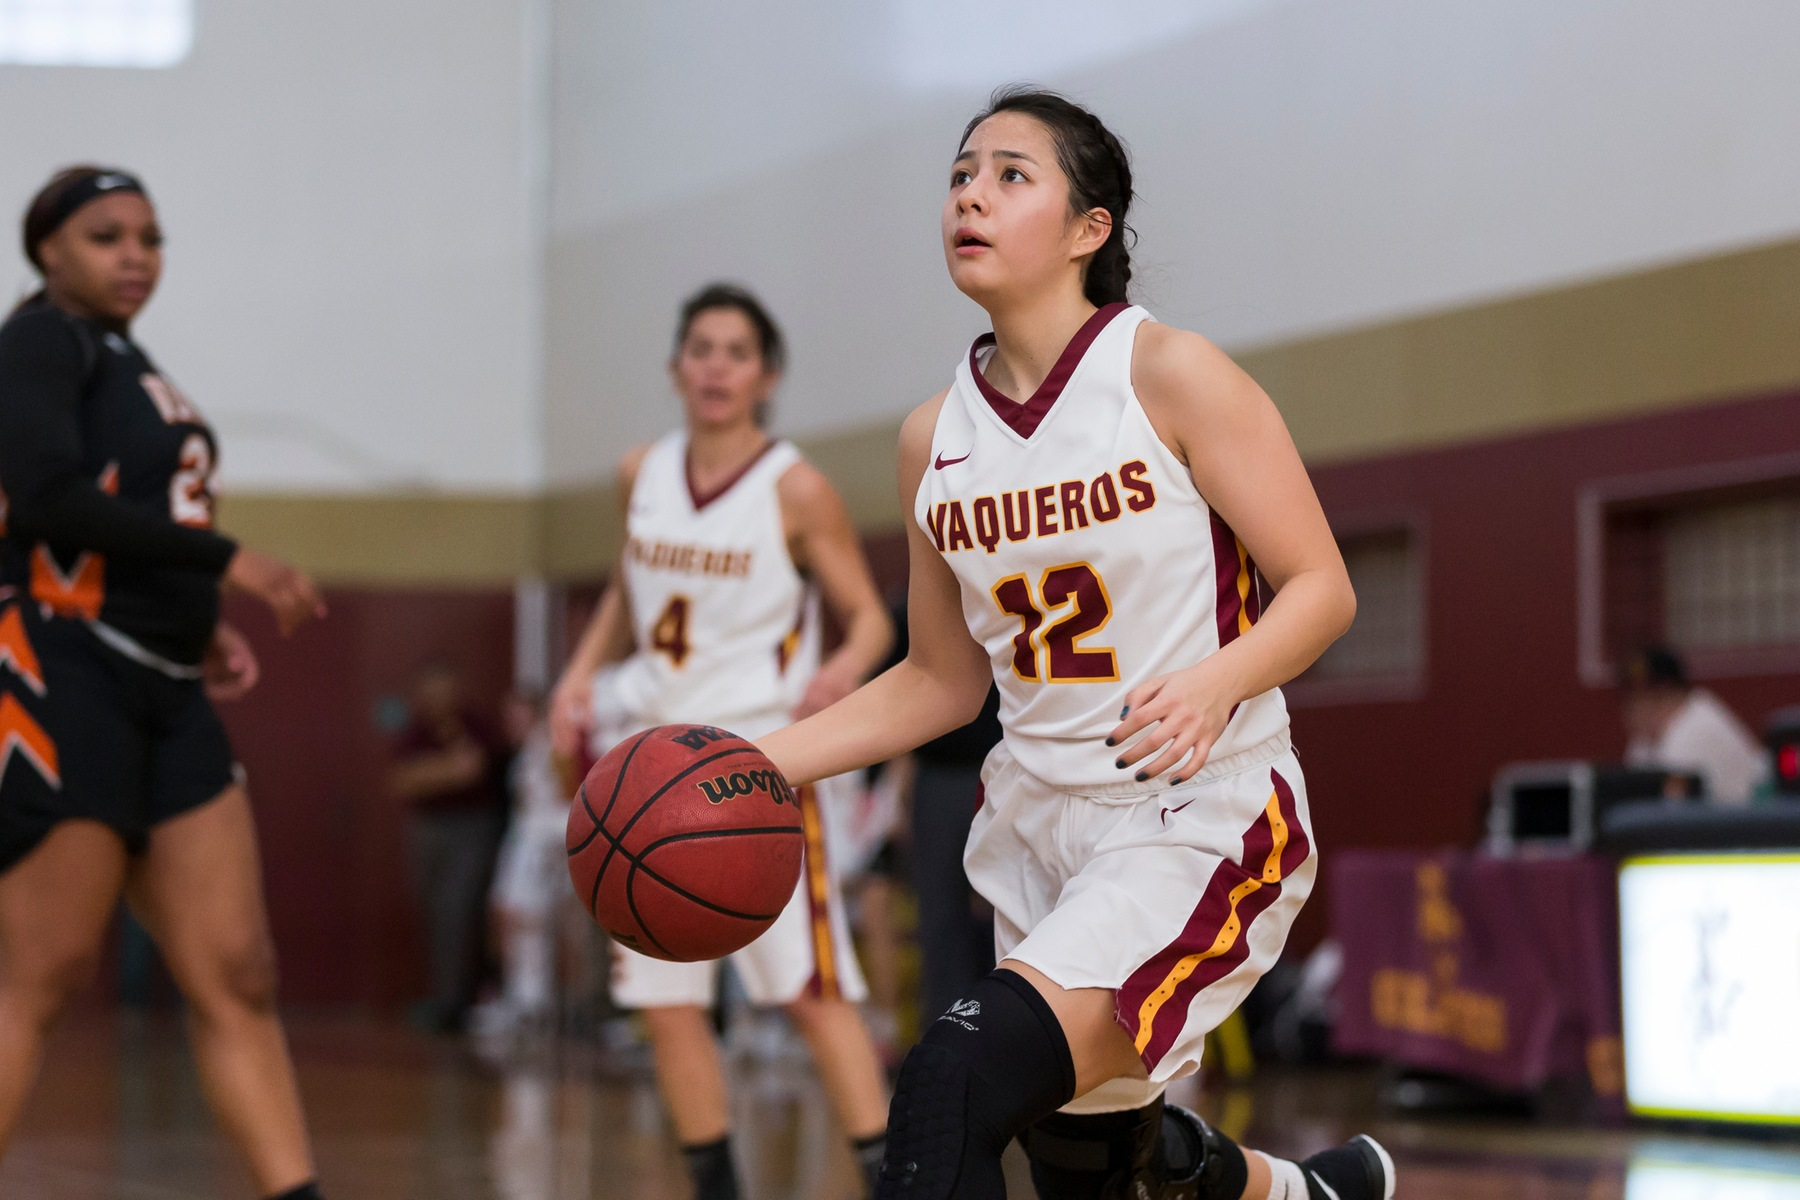 GCC improves to 22-2 with 65-45 win over Bakersfield